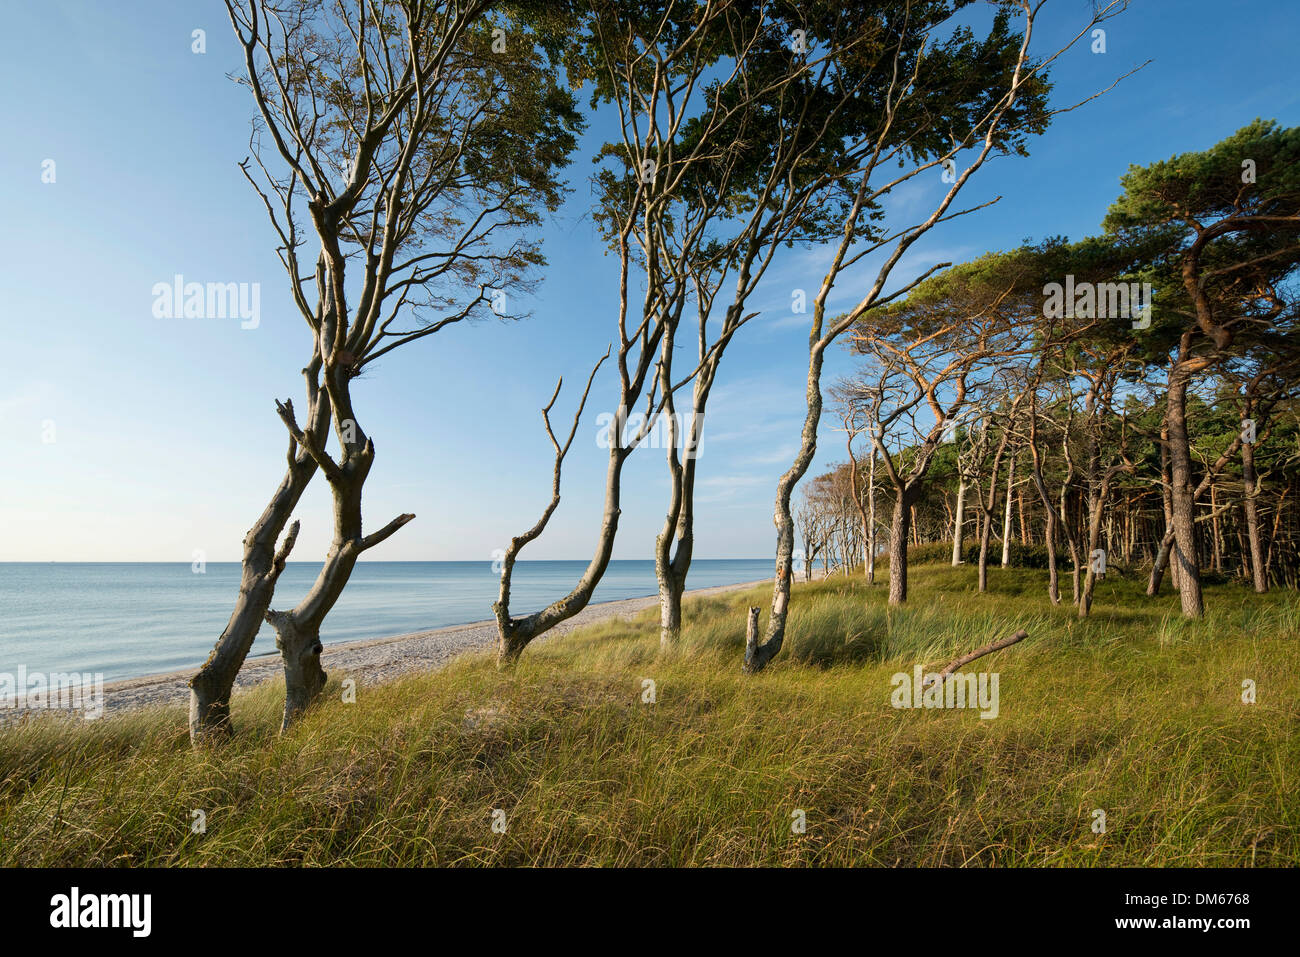 Wind-bent beeches (Fagus sylvatica) and pines (Pinus sylvestris), Weststrand beach, Baltic Sea, Darss, Western Pomerania Lagoon - Stock Image